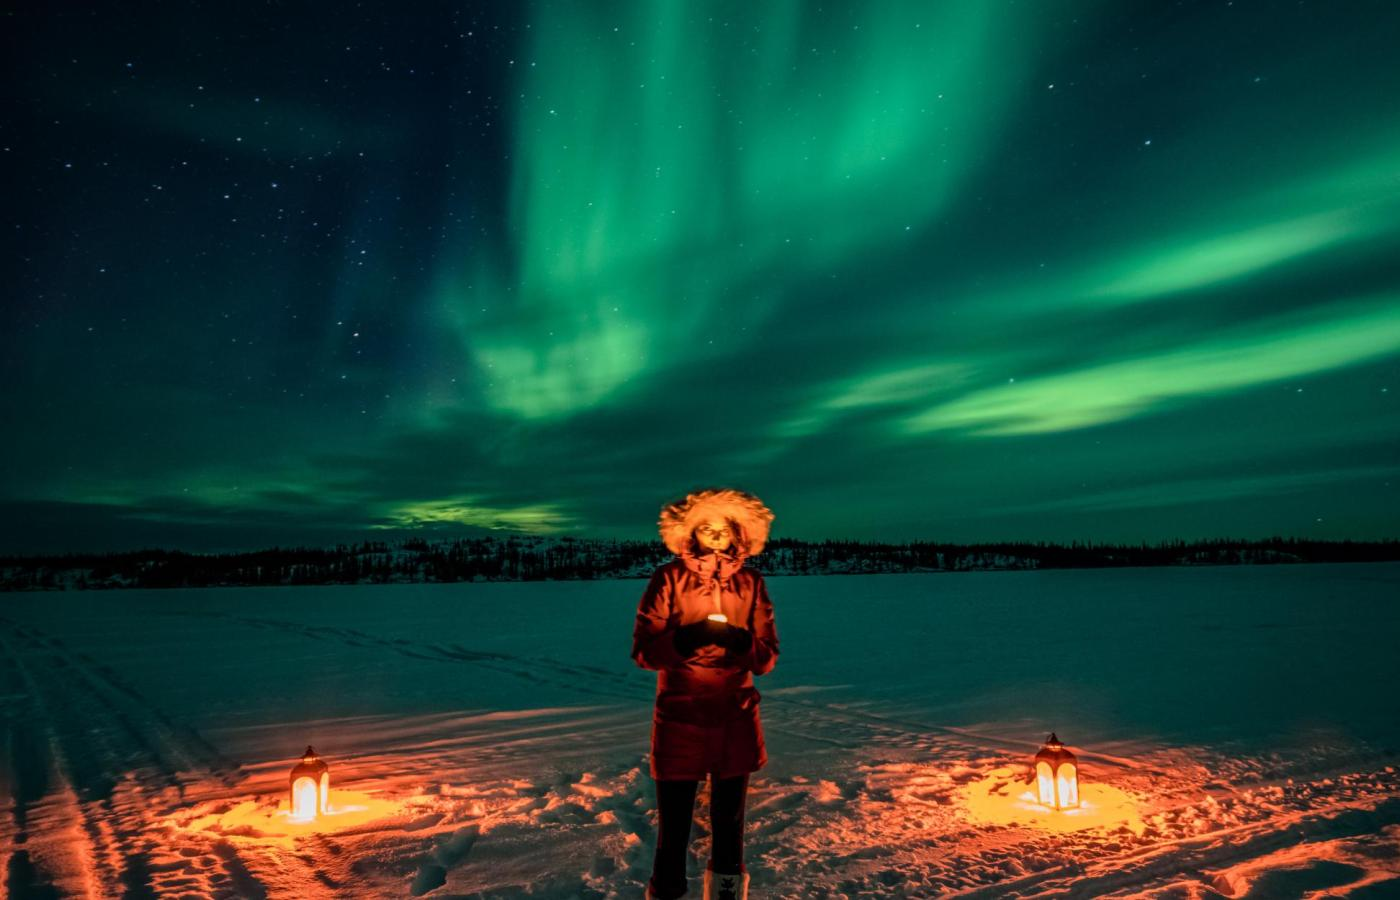 The best place in Canada to view the Northern Lights